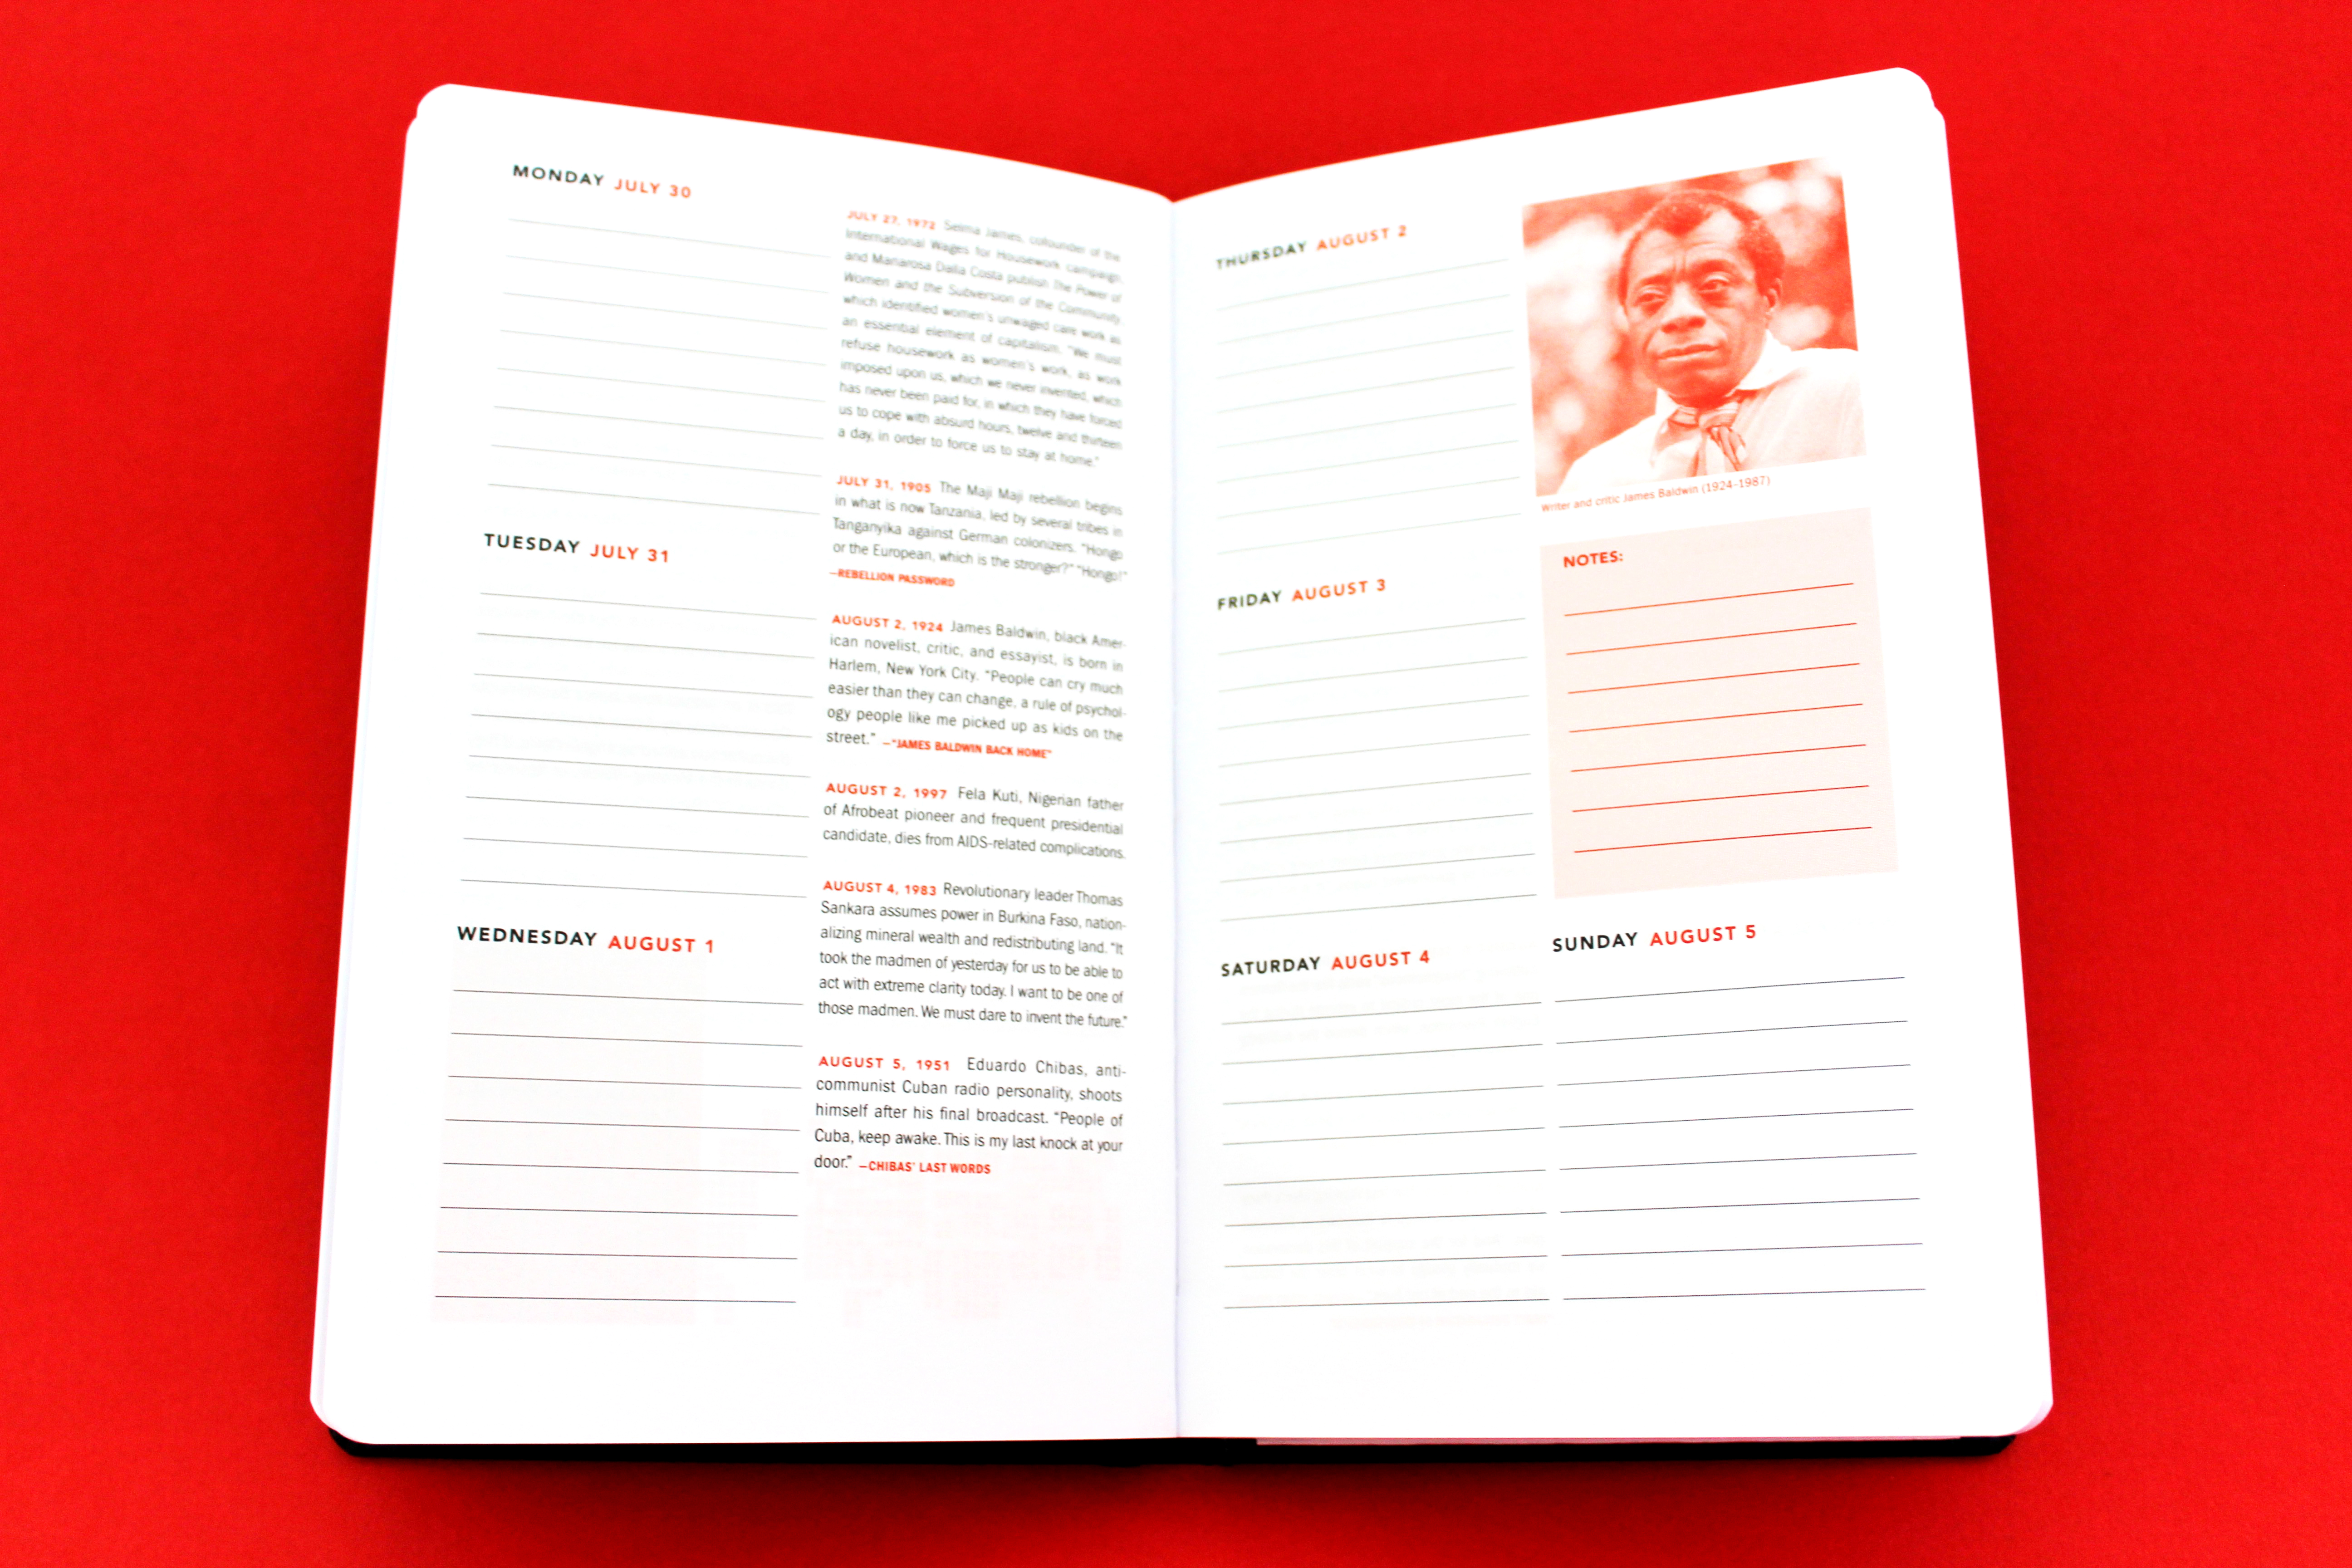 Diary-doublepage-red